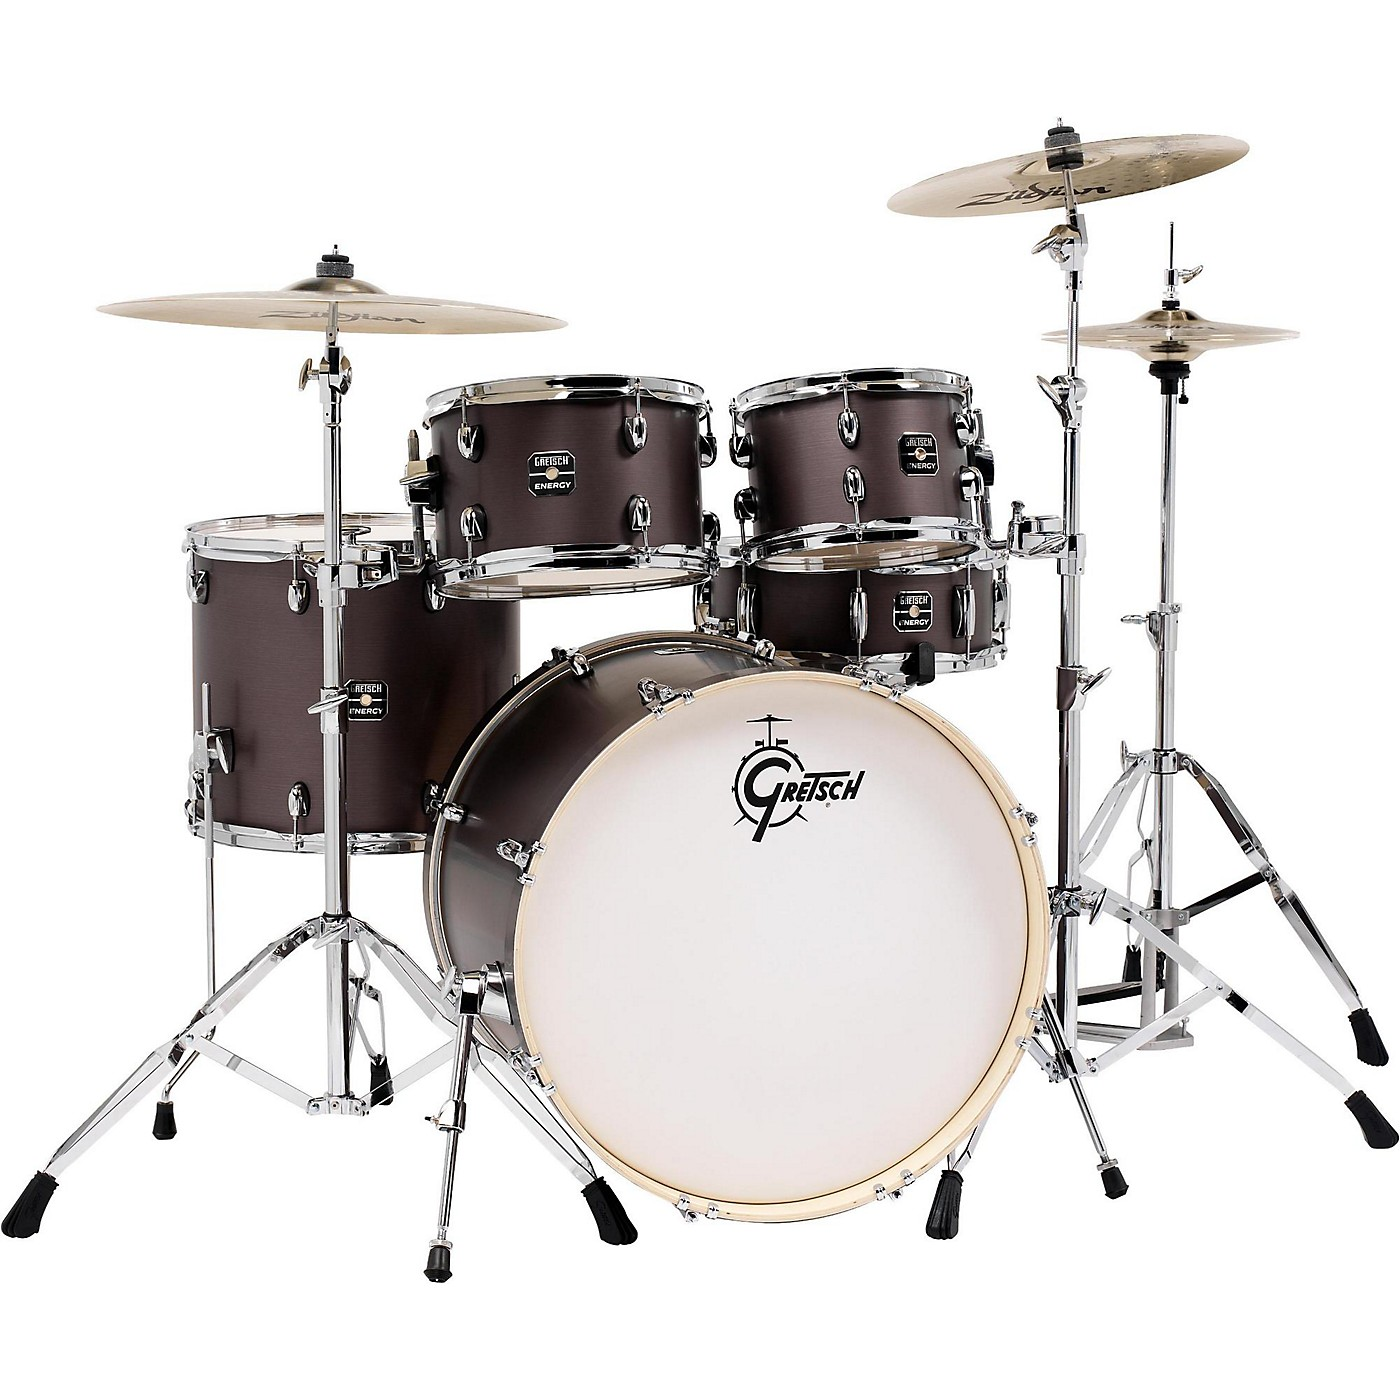 Gretsch Drums Energy 5-Piece Drum Set Brushed Grey with Hardware and Zildjian Cymbals thumbnail